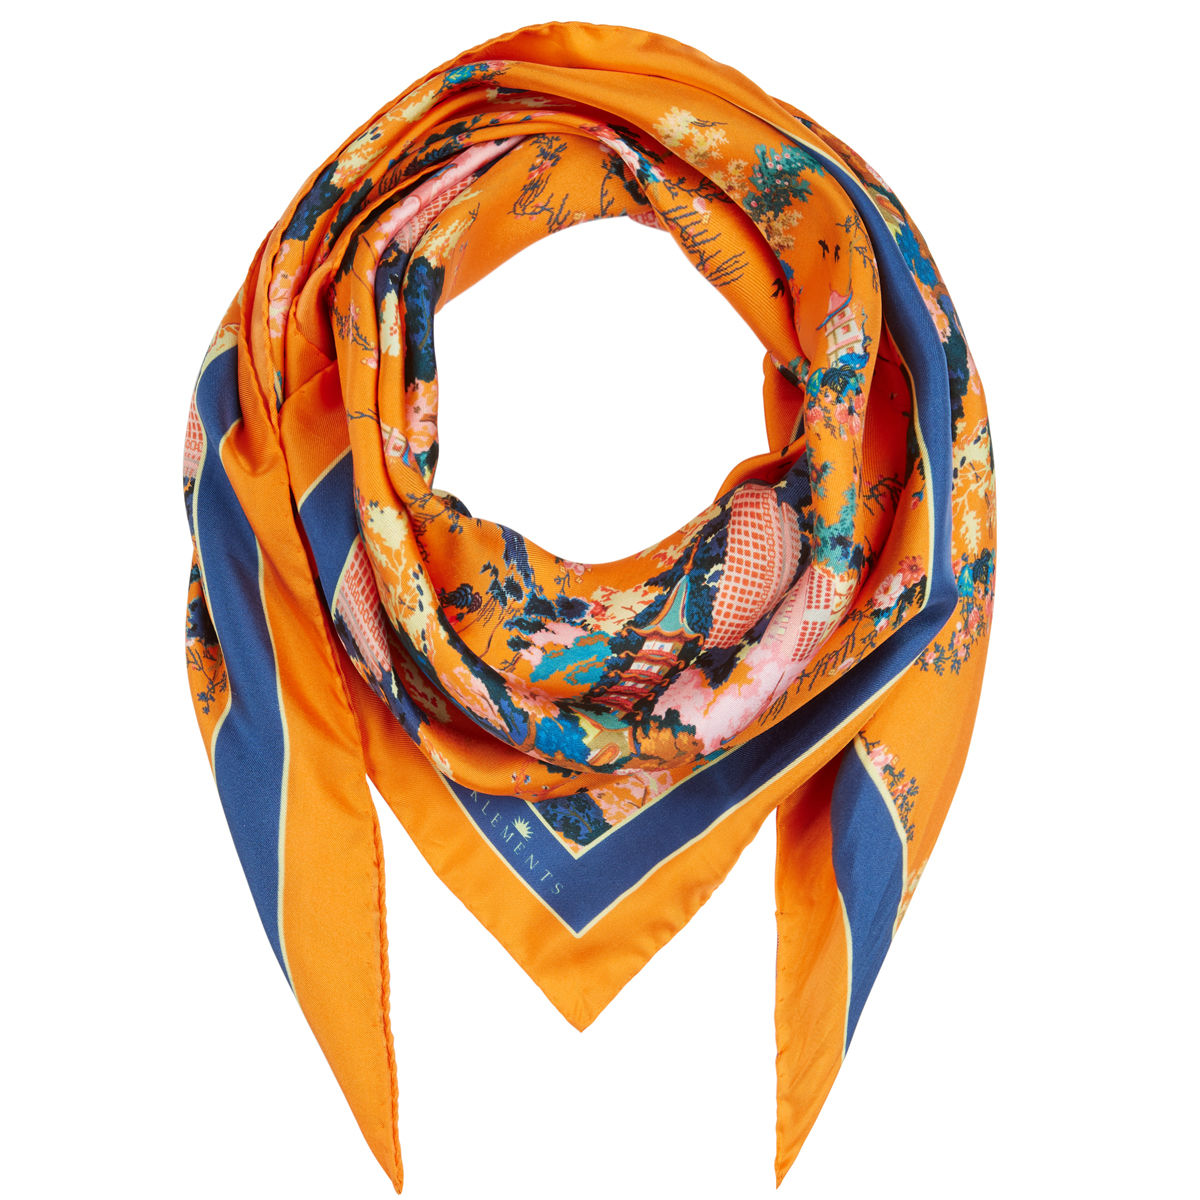 Medium scarf in Urban Chinoiserie (satsuma) print - product images  of